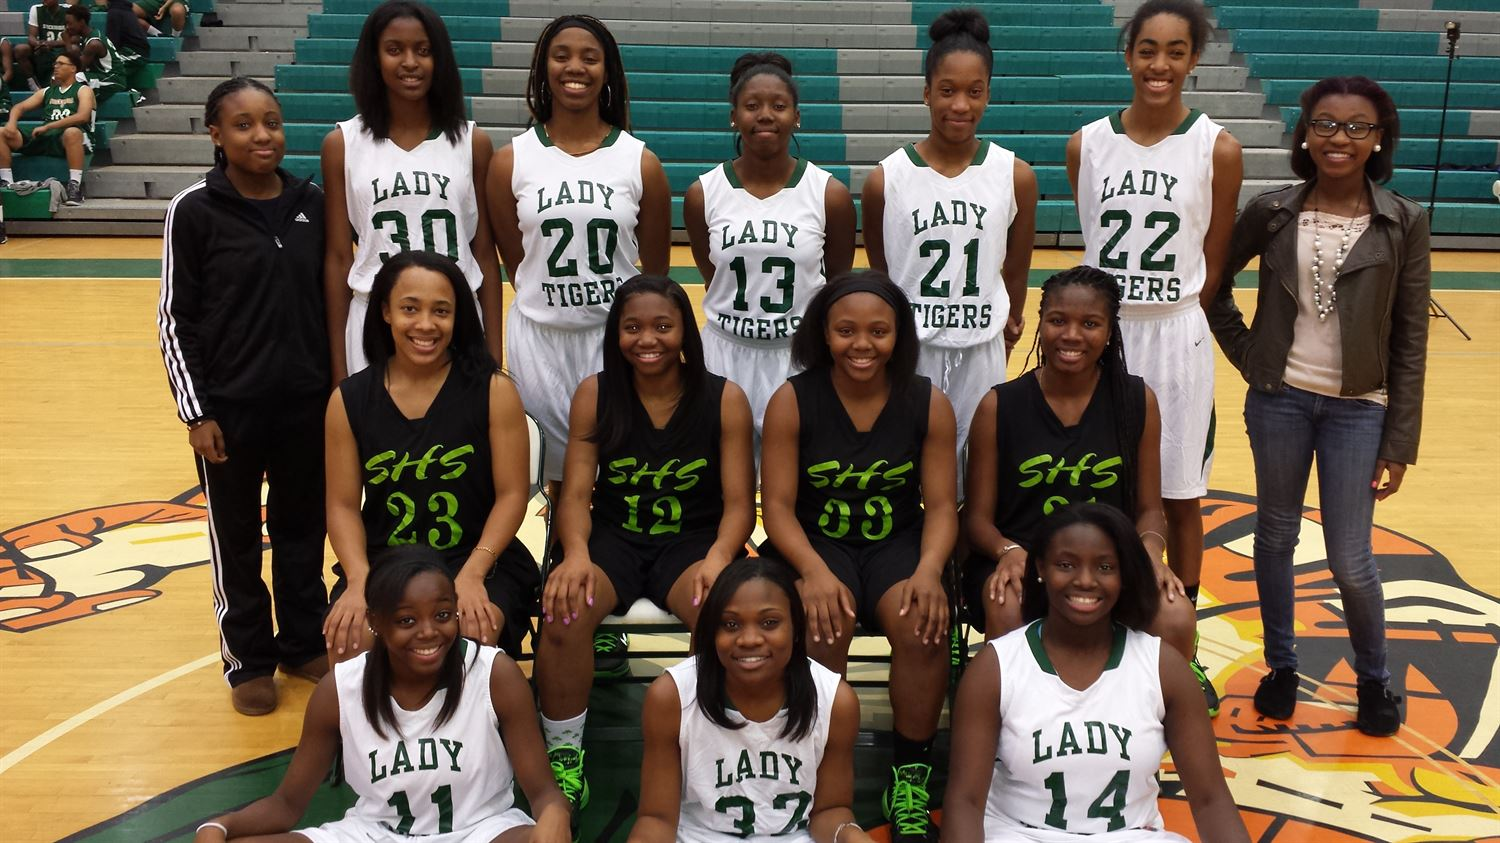 Stockbridge High School - Girls Varsity Basketball